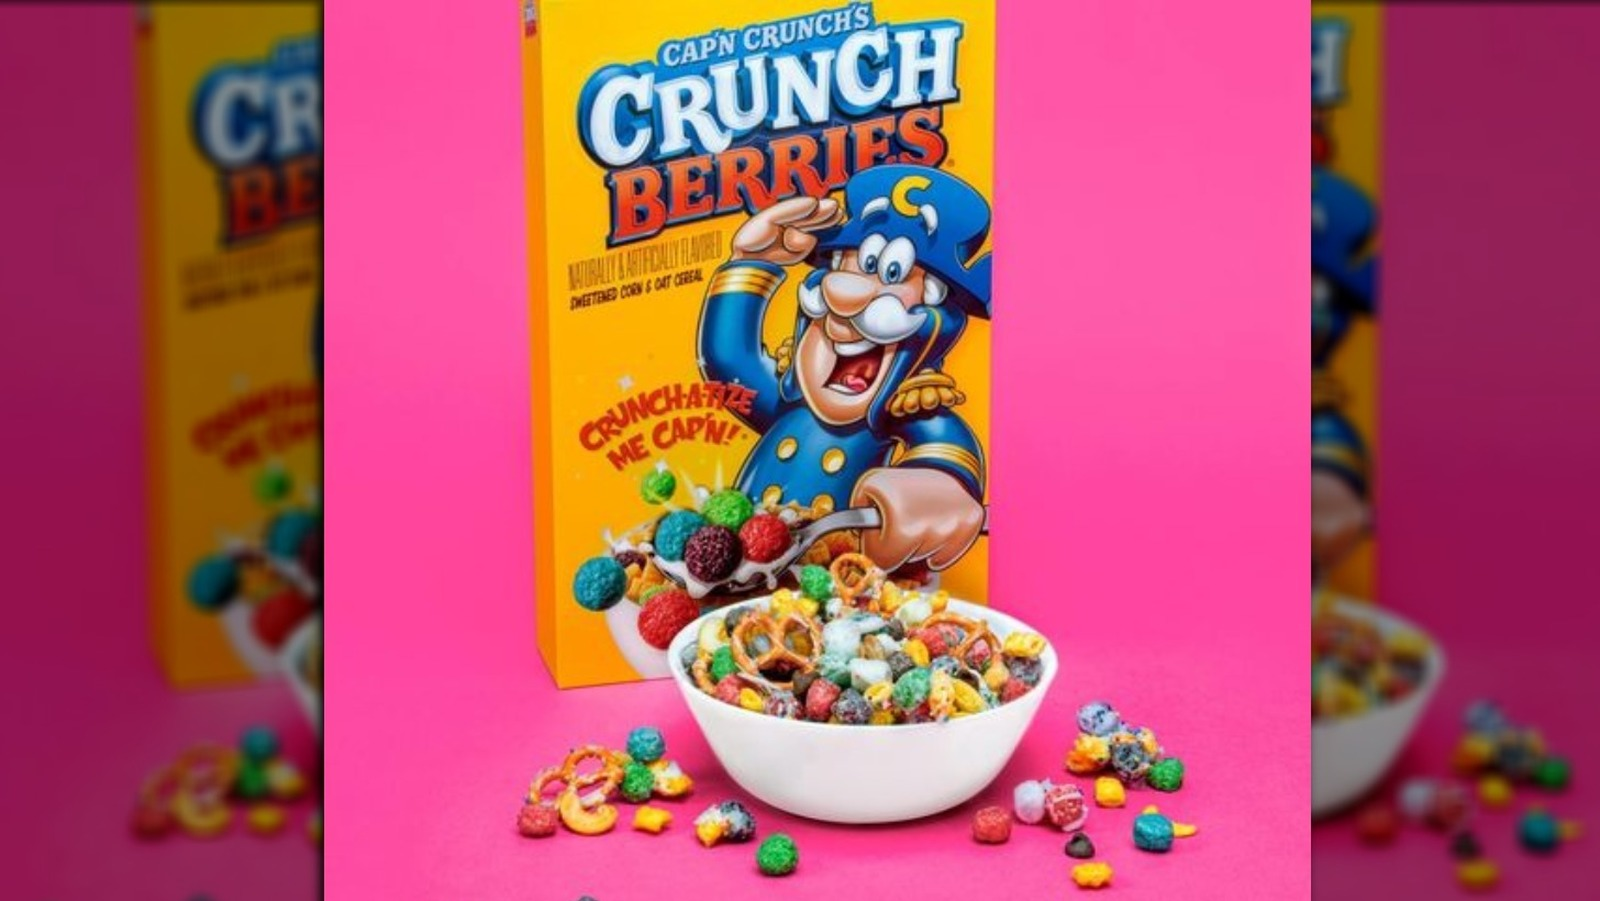 Oops All Berries / Just snag yourself a box of cap'n crunch's oops!